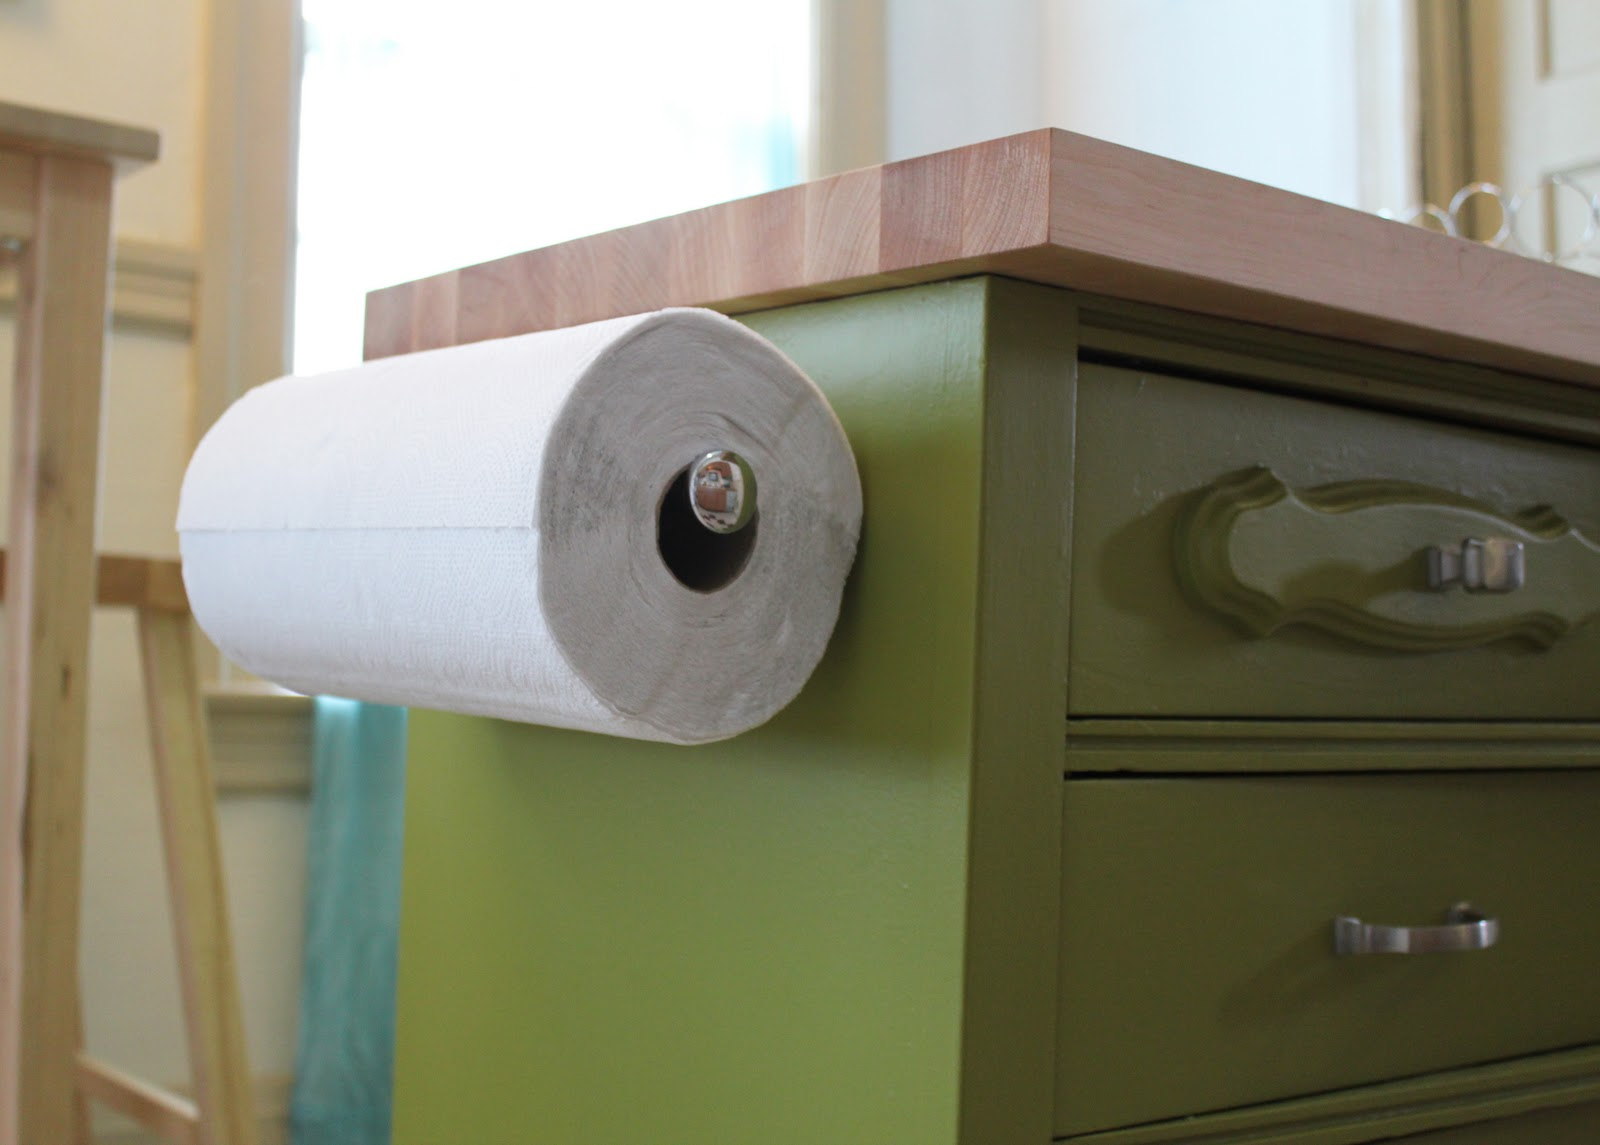 Kitchenaid paper towel holder photo - 1